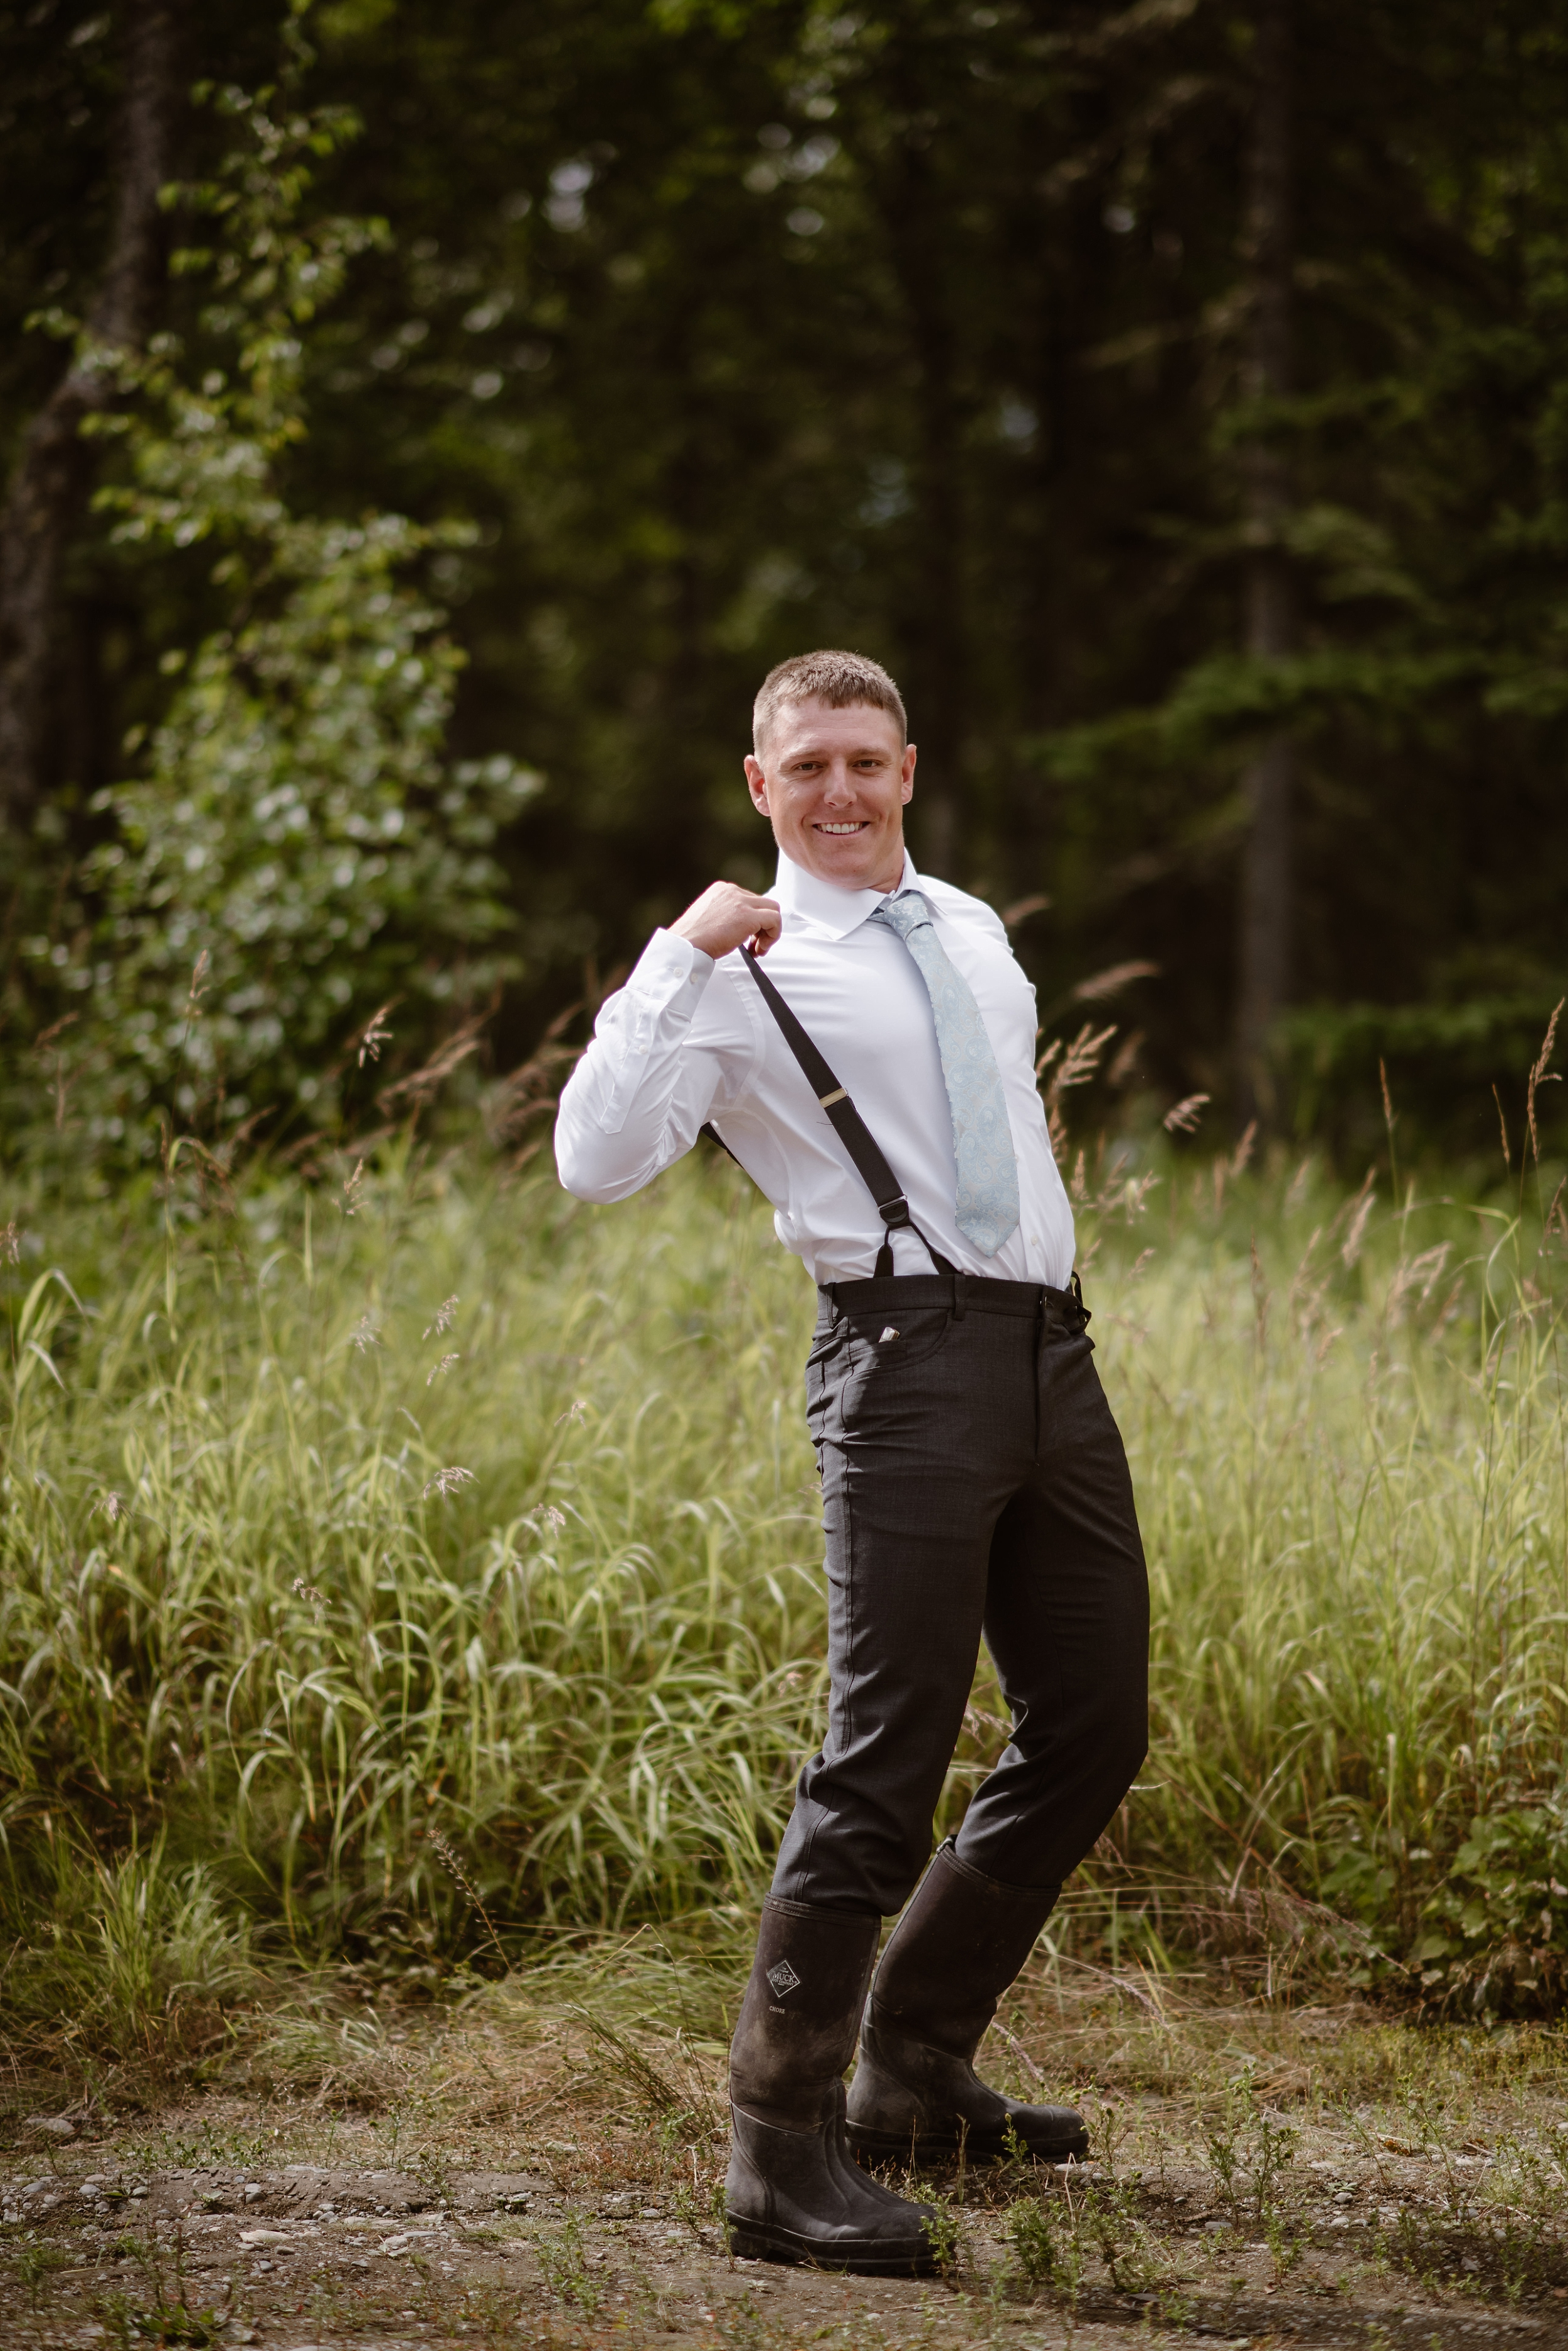 The groom, outfitted in his dress pants, hiking boots, and tie while sporting a goofy face in the lush, green yard of the Alaskan Airbnb. He's pulling on his suspenders in this image captured by Alaska wedding photographers Adventure Instead.